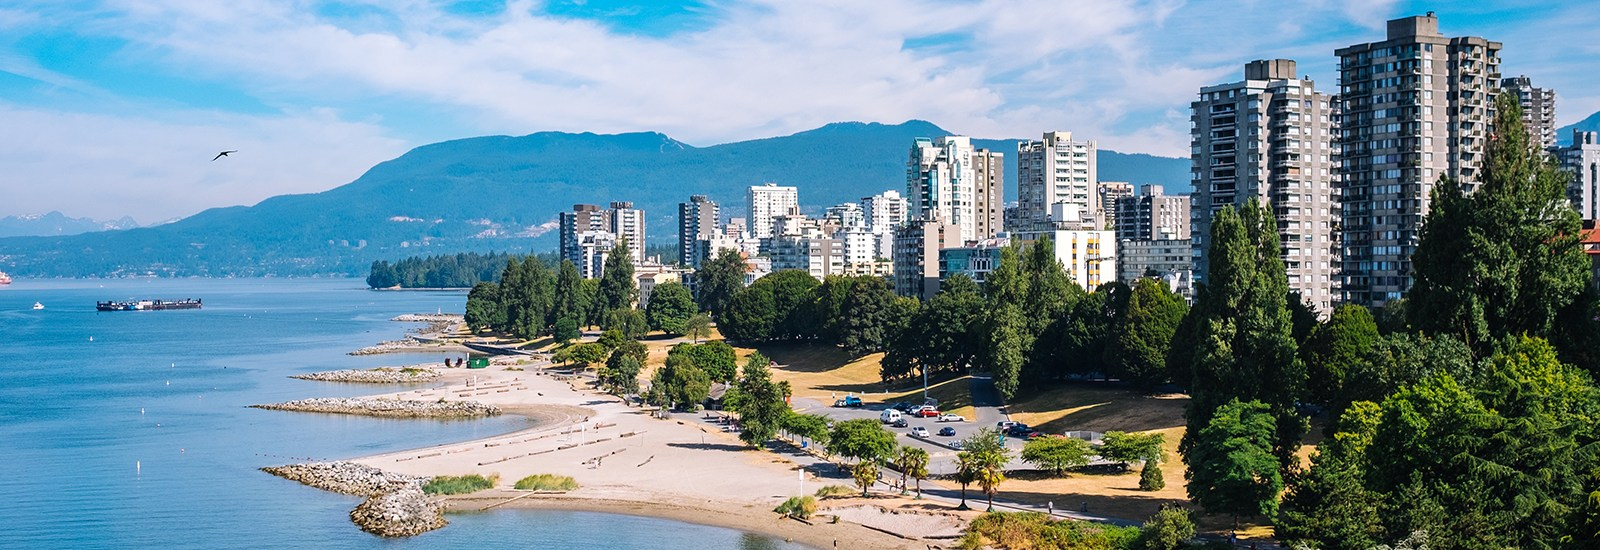 Vancouver-Canada-British-Colombia-beach-trees-banner-GettyImages